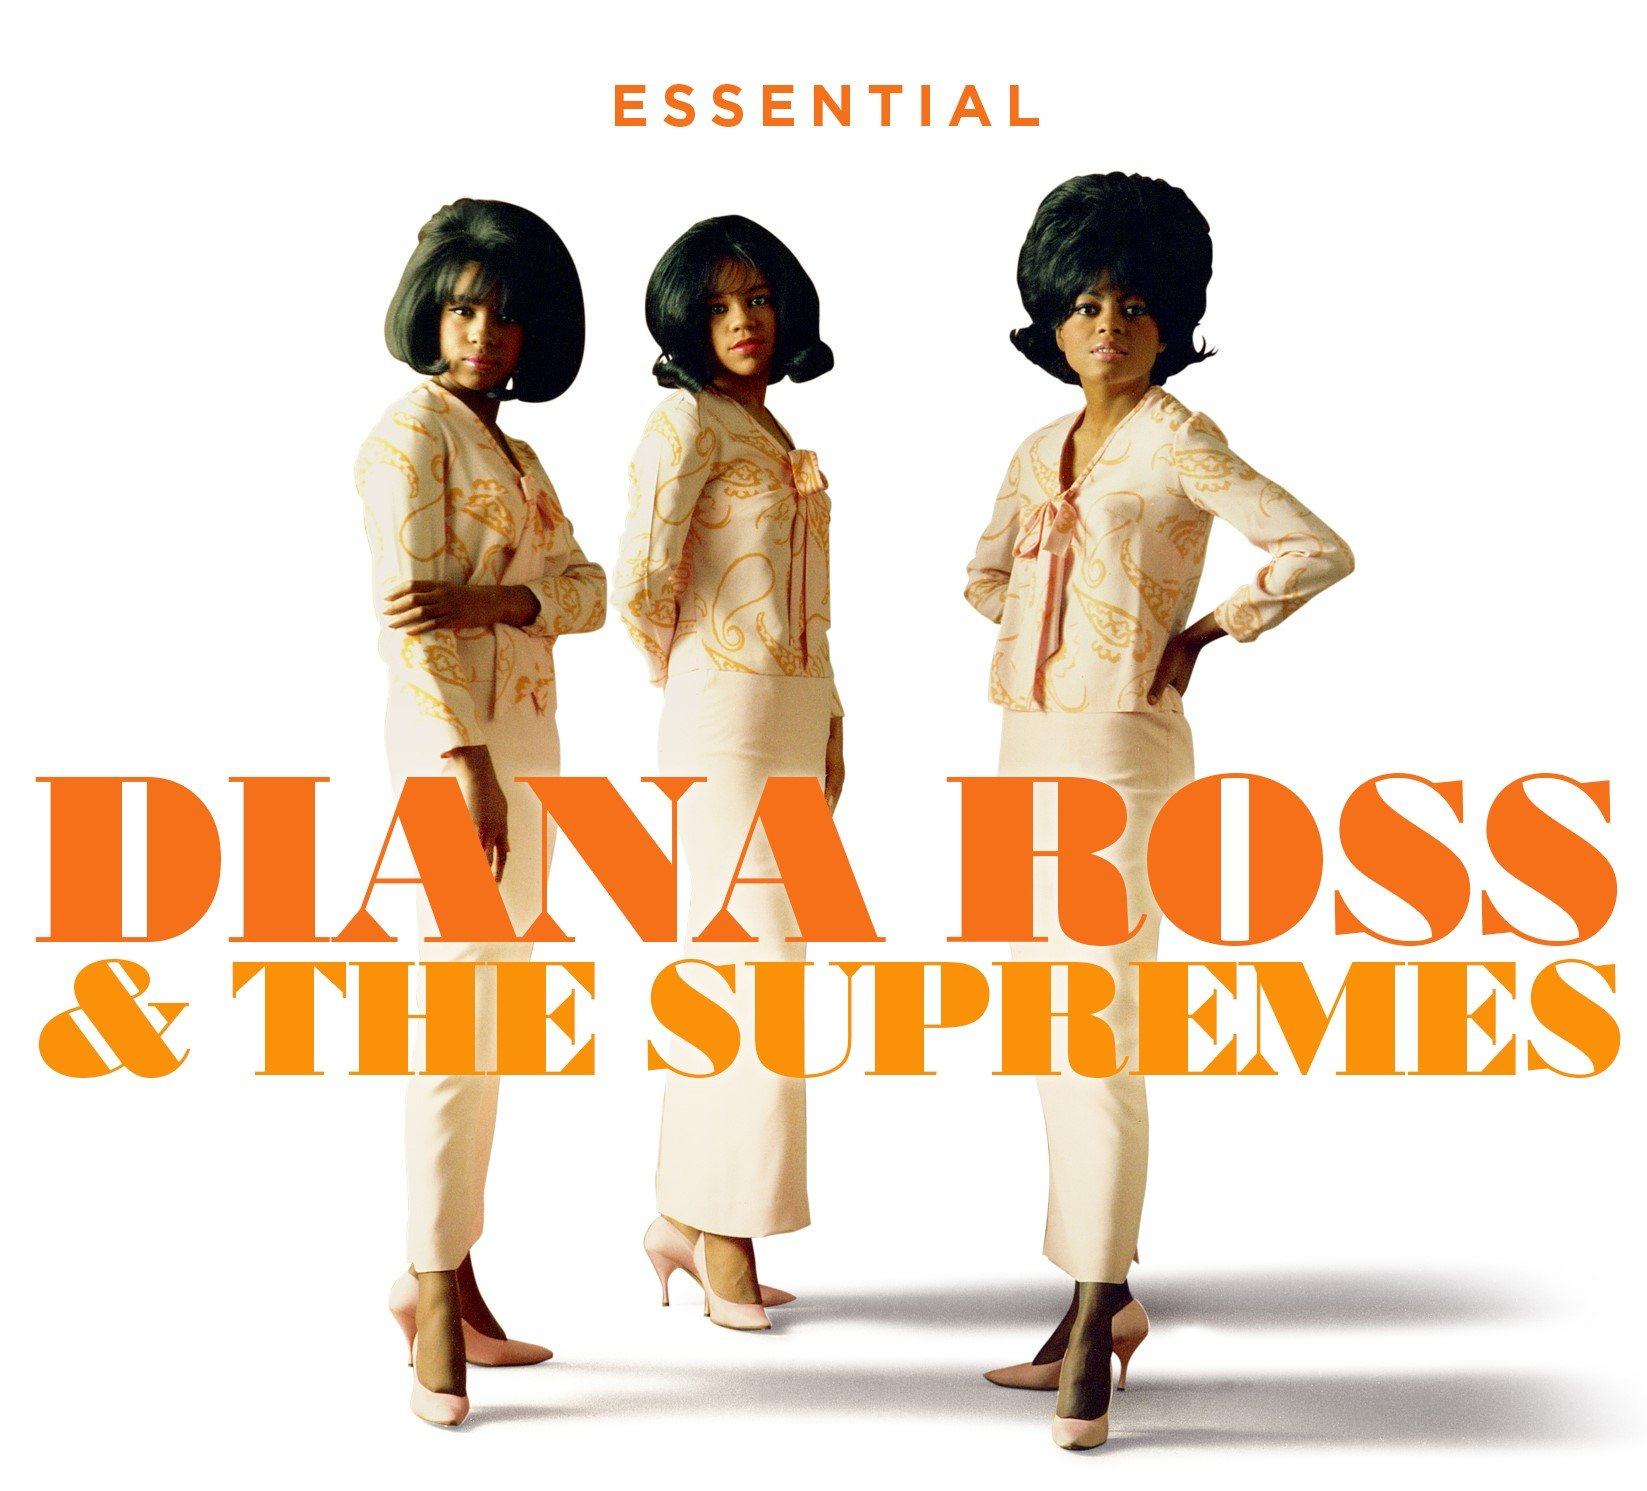 diana ross essential diana ross and the suremes cdx3 rough trade essential diana ross and the suremes